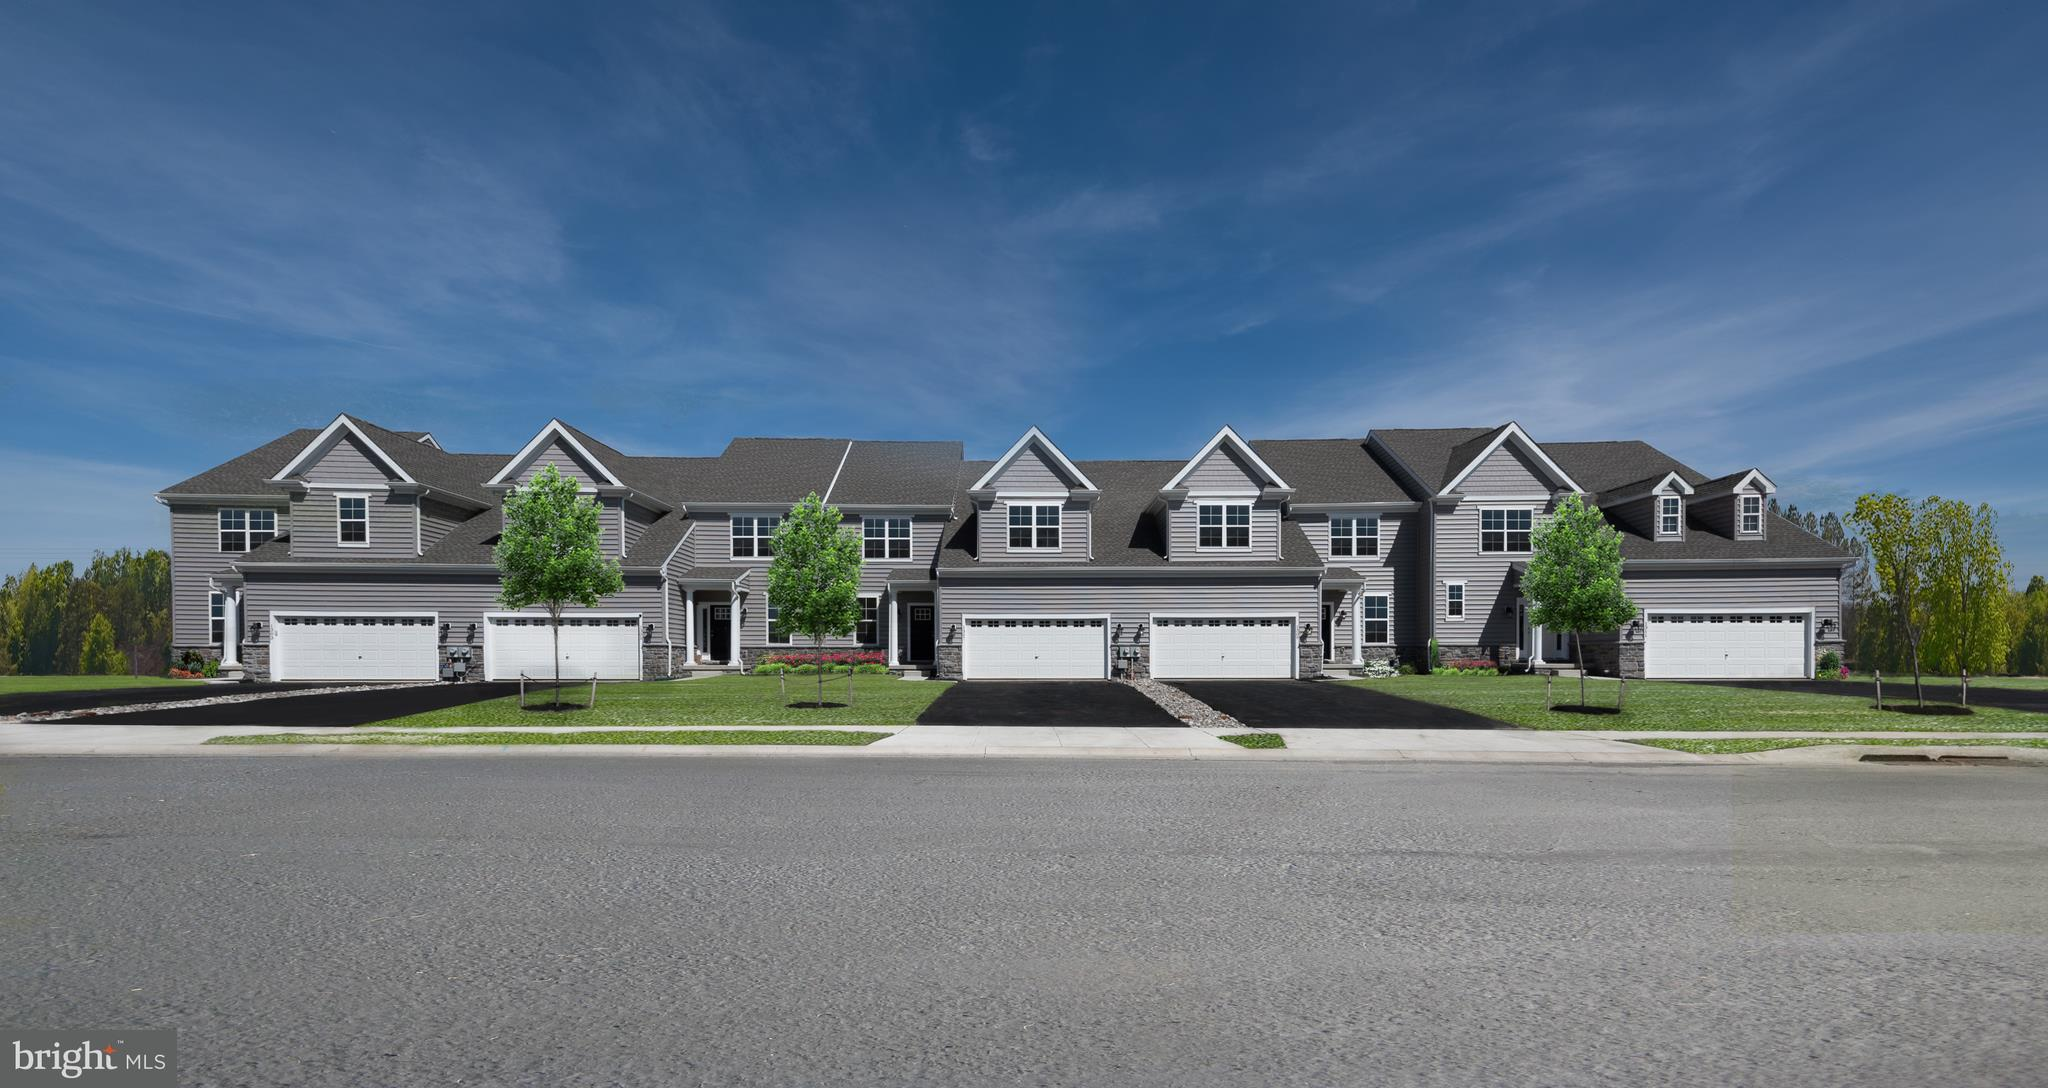 "The Walden-Carriage homes feature 3 bedrooms, 2.5 baths, 2 car garage,  42"" kitchen cabinets, wall to wall carpeting,  spacious open-concept main level, public sewer and water, underground utilities, blacktop driveway, streetlights, sidewalks & curbed streets, located in the esteemed Appoquinimink School District. (Pic of similar model).    We also offer FIRST FLOOR OWNERS BEDROOMS! The Walden has an alternate plan offering main level owners along with 2 bedrooms and a loft upstairs and an optional 3rd bathroom or princess suite! To be built."